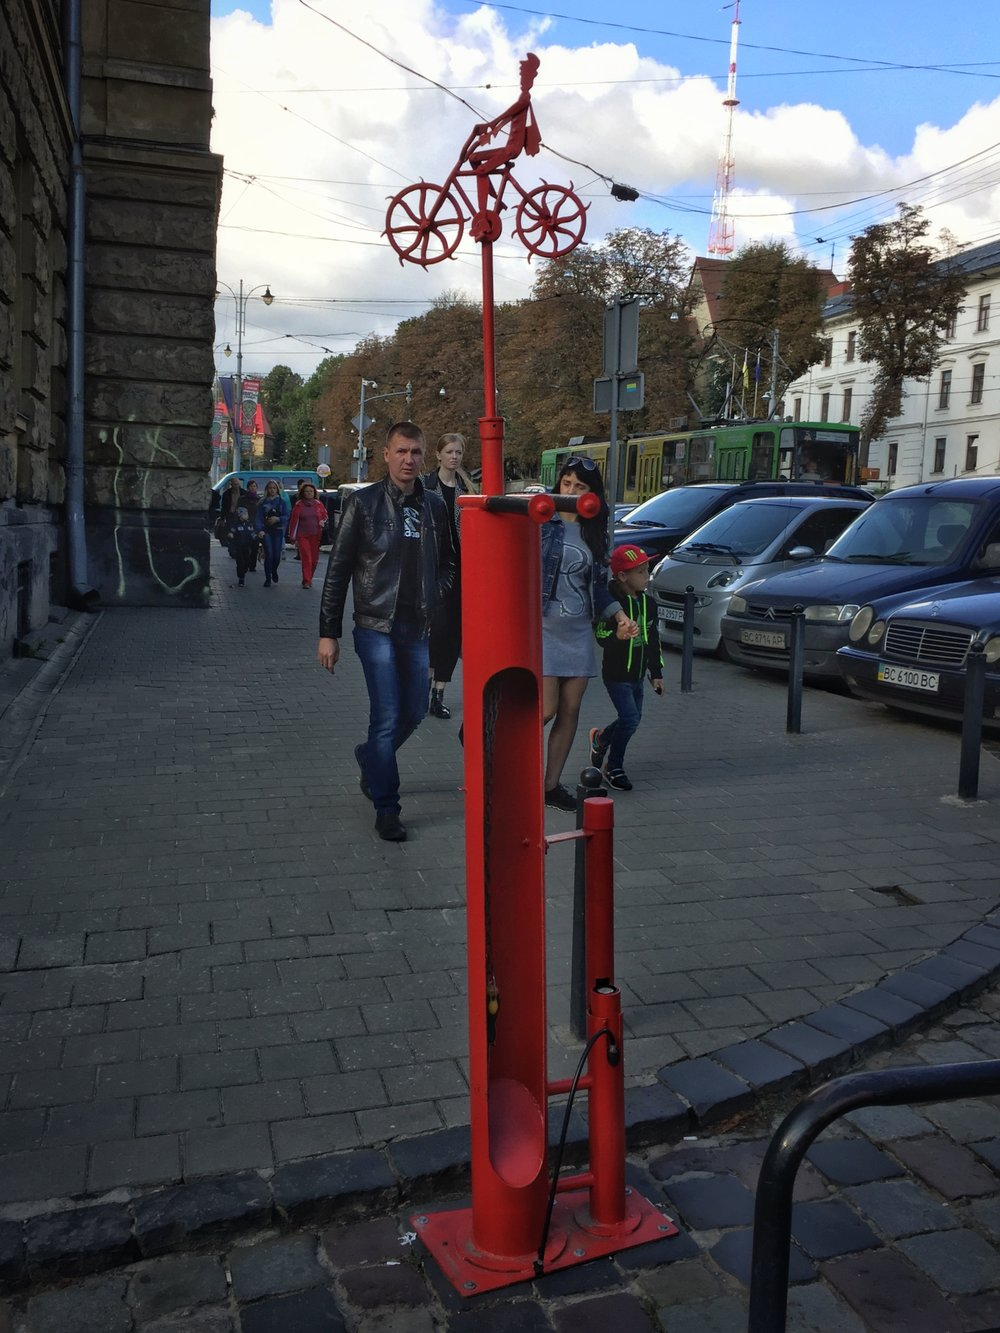 the city center has a few handy bike repair stations